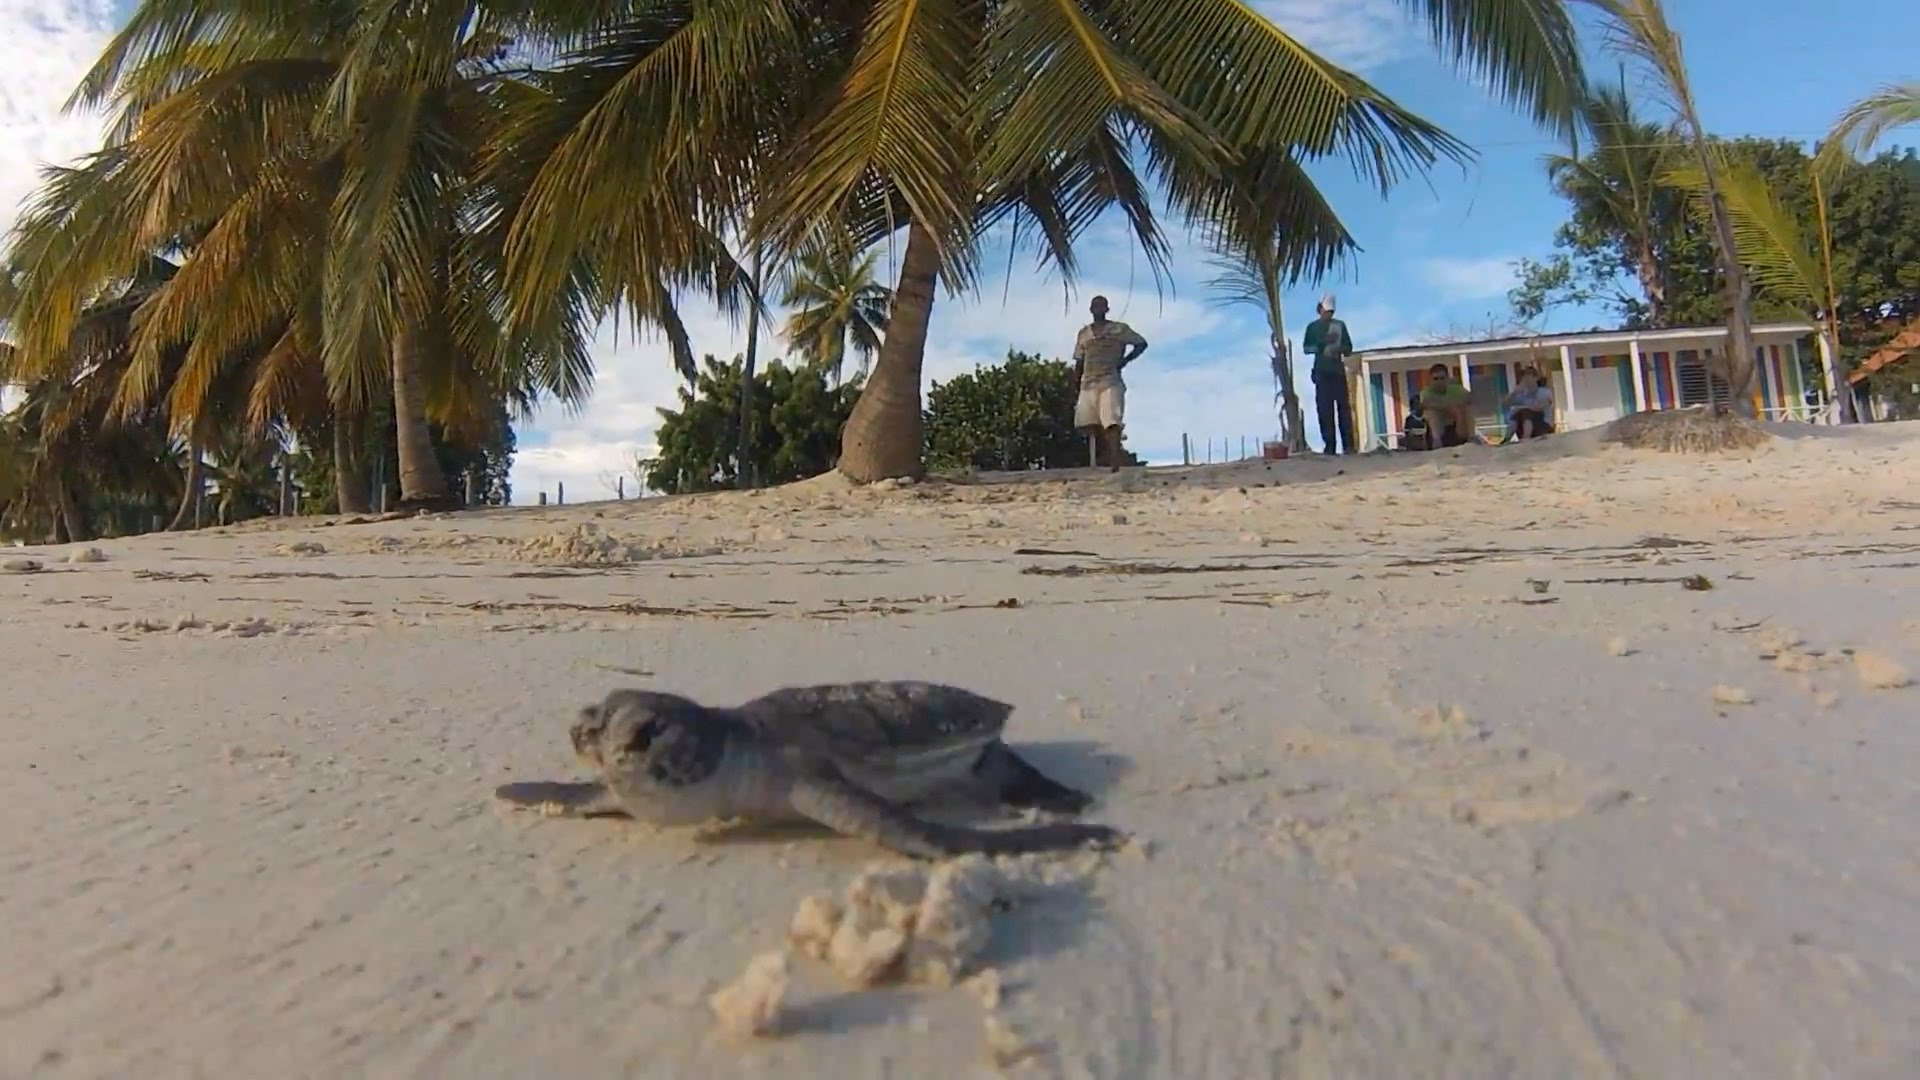 Island Solutions: Sustainable Tourism For Secure Livelihoods